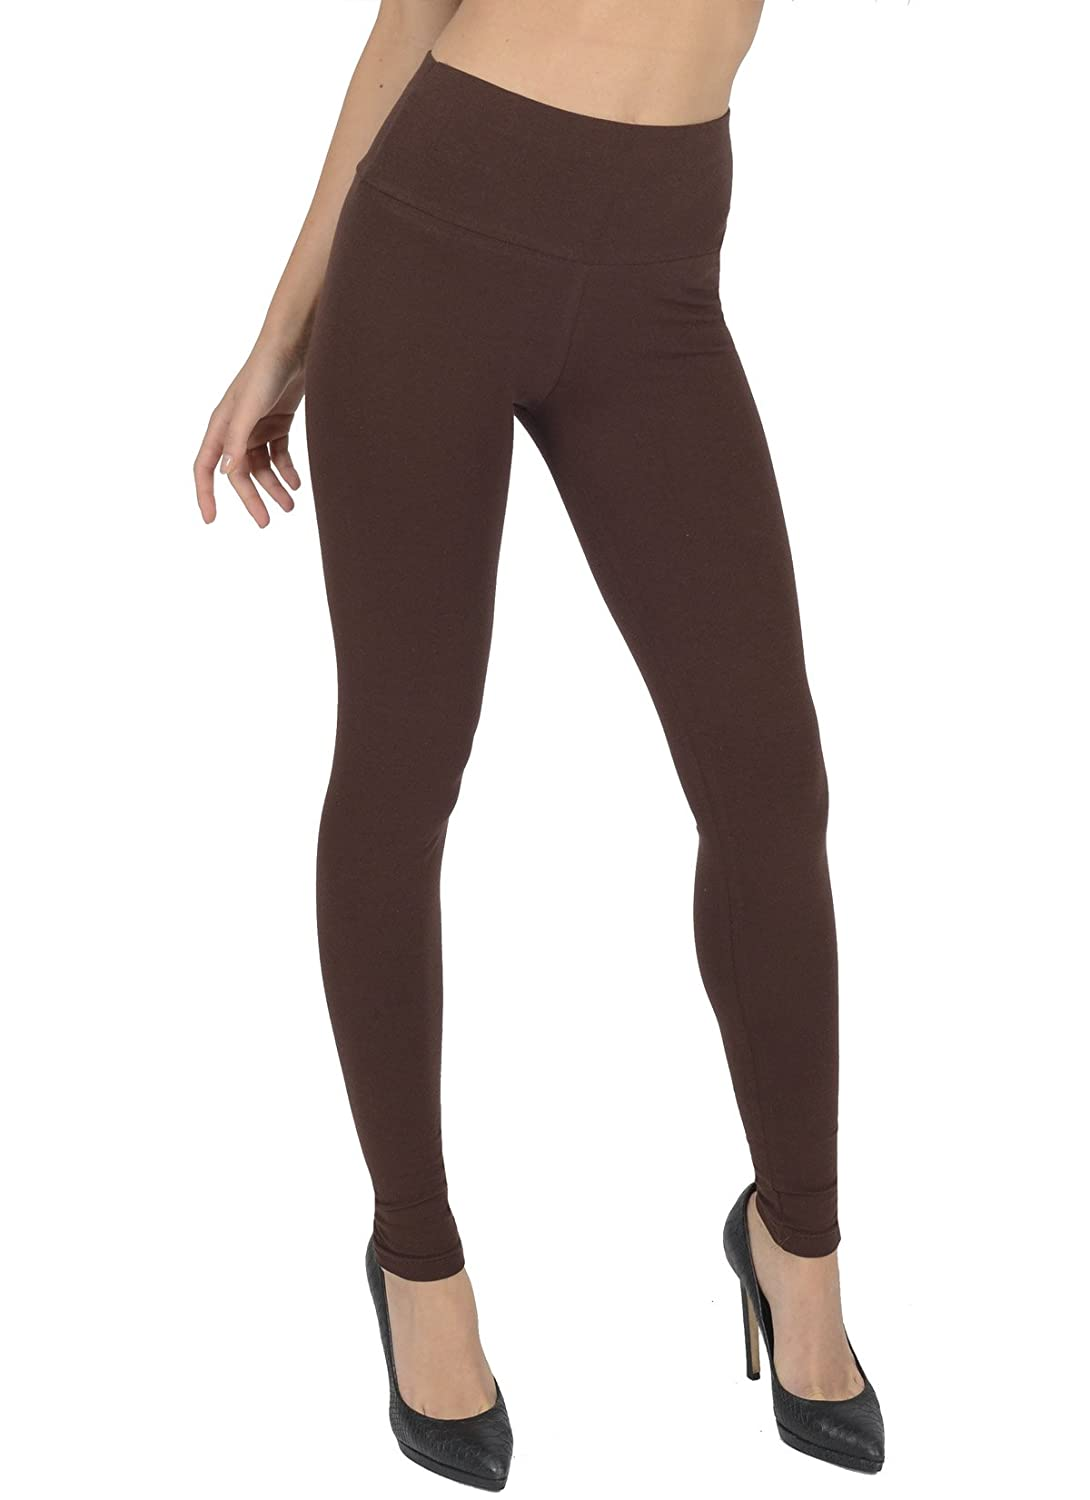 Women's High Waisted Full Length Leggings By Today Is Her ® Extra Comfort Range, Plus Sizes A05-Parent